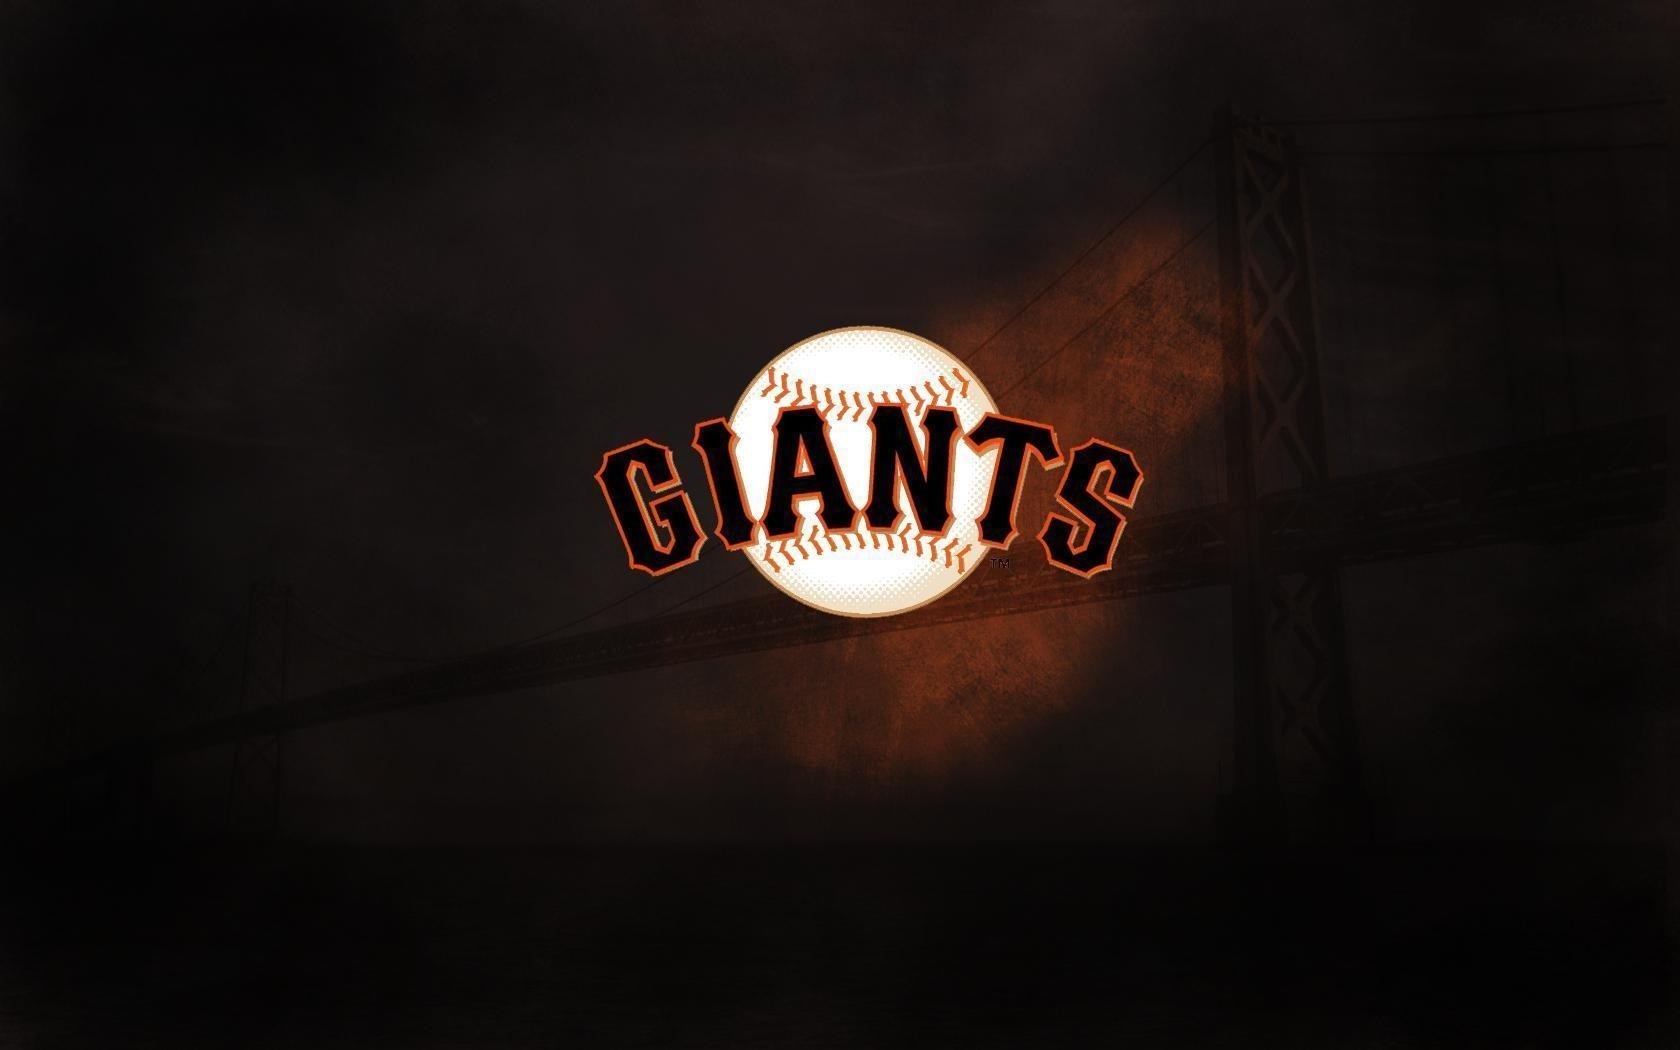 san francisco giants logo wallpapers - wallpaper cave